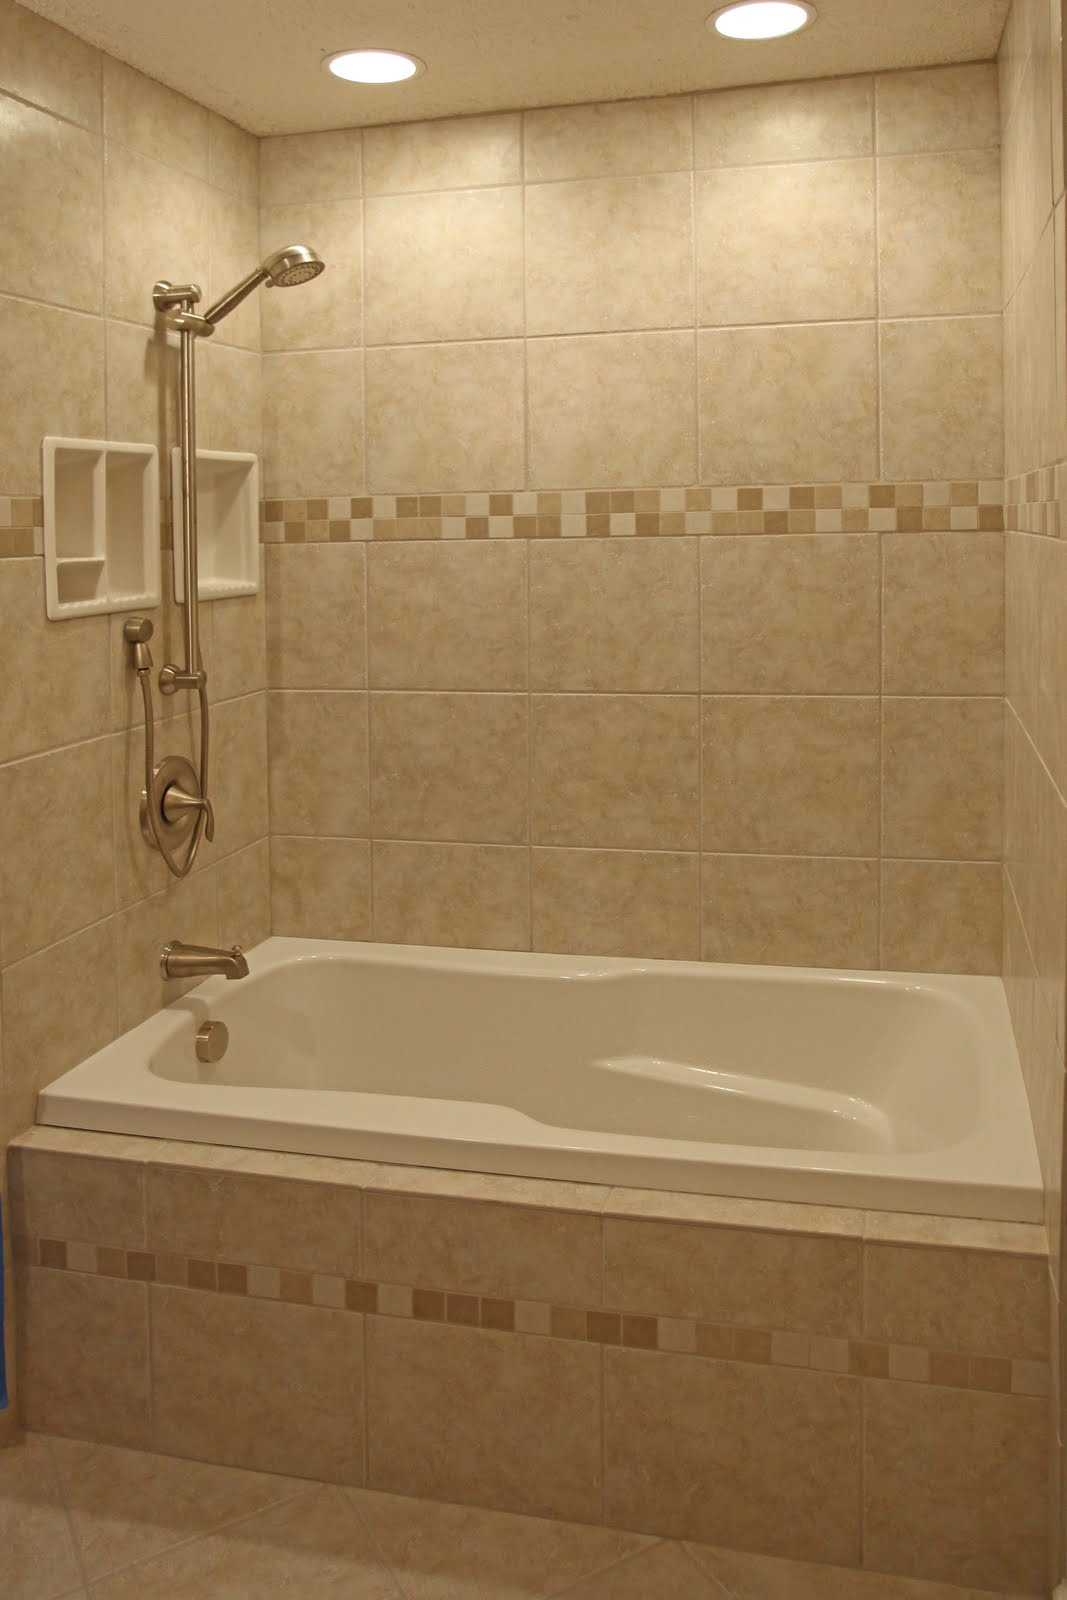 Bathroom remodeling design ideas tile shower niches november 2009 Bathroom tile design ideas for small bathrooms